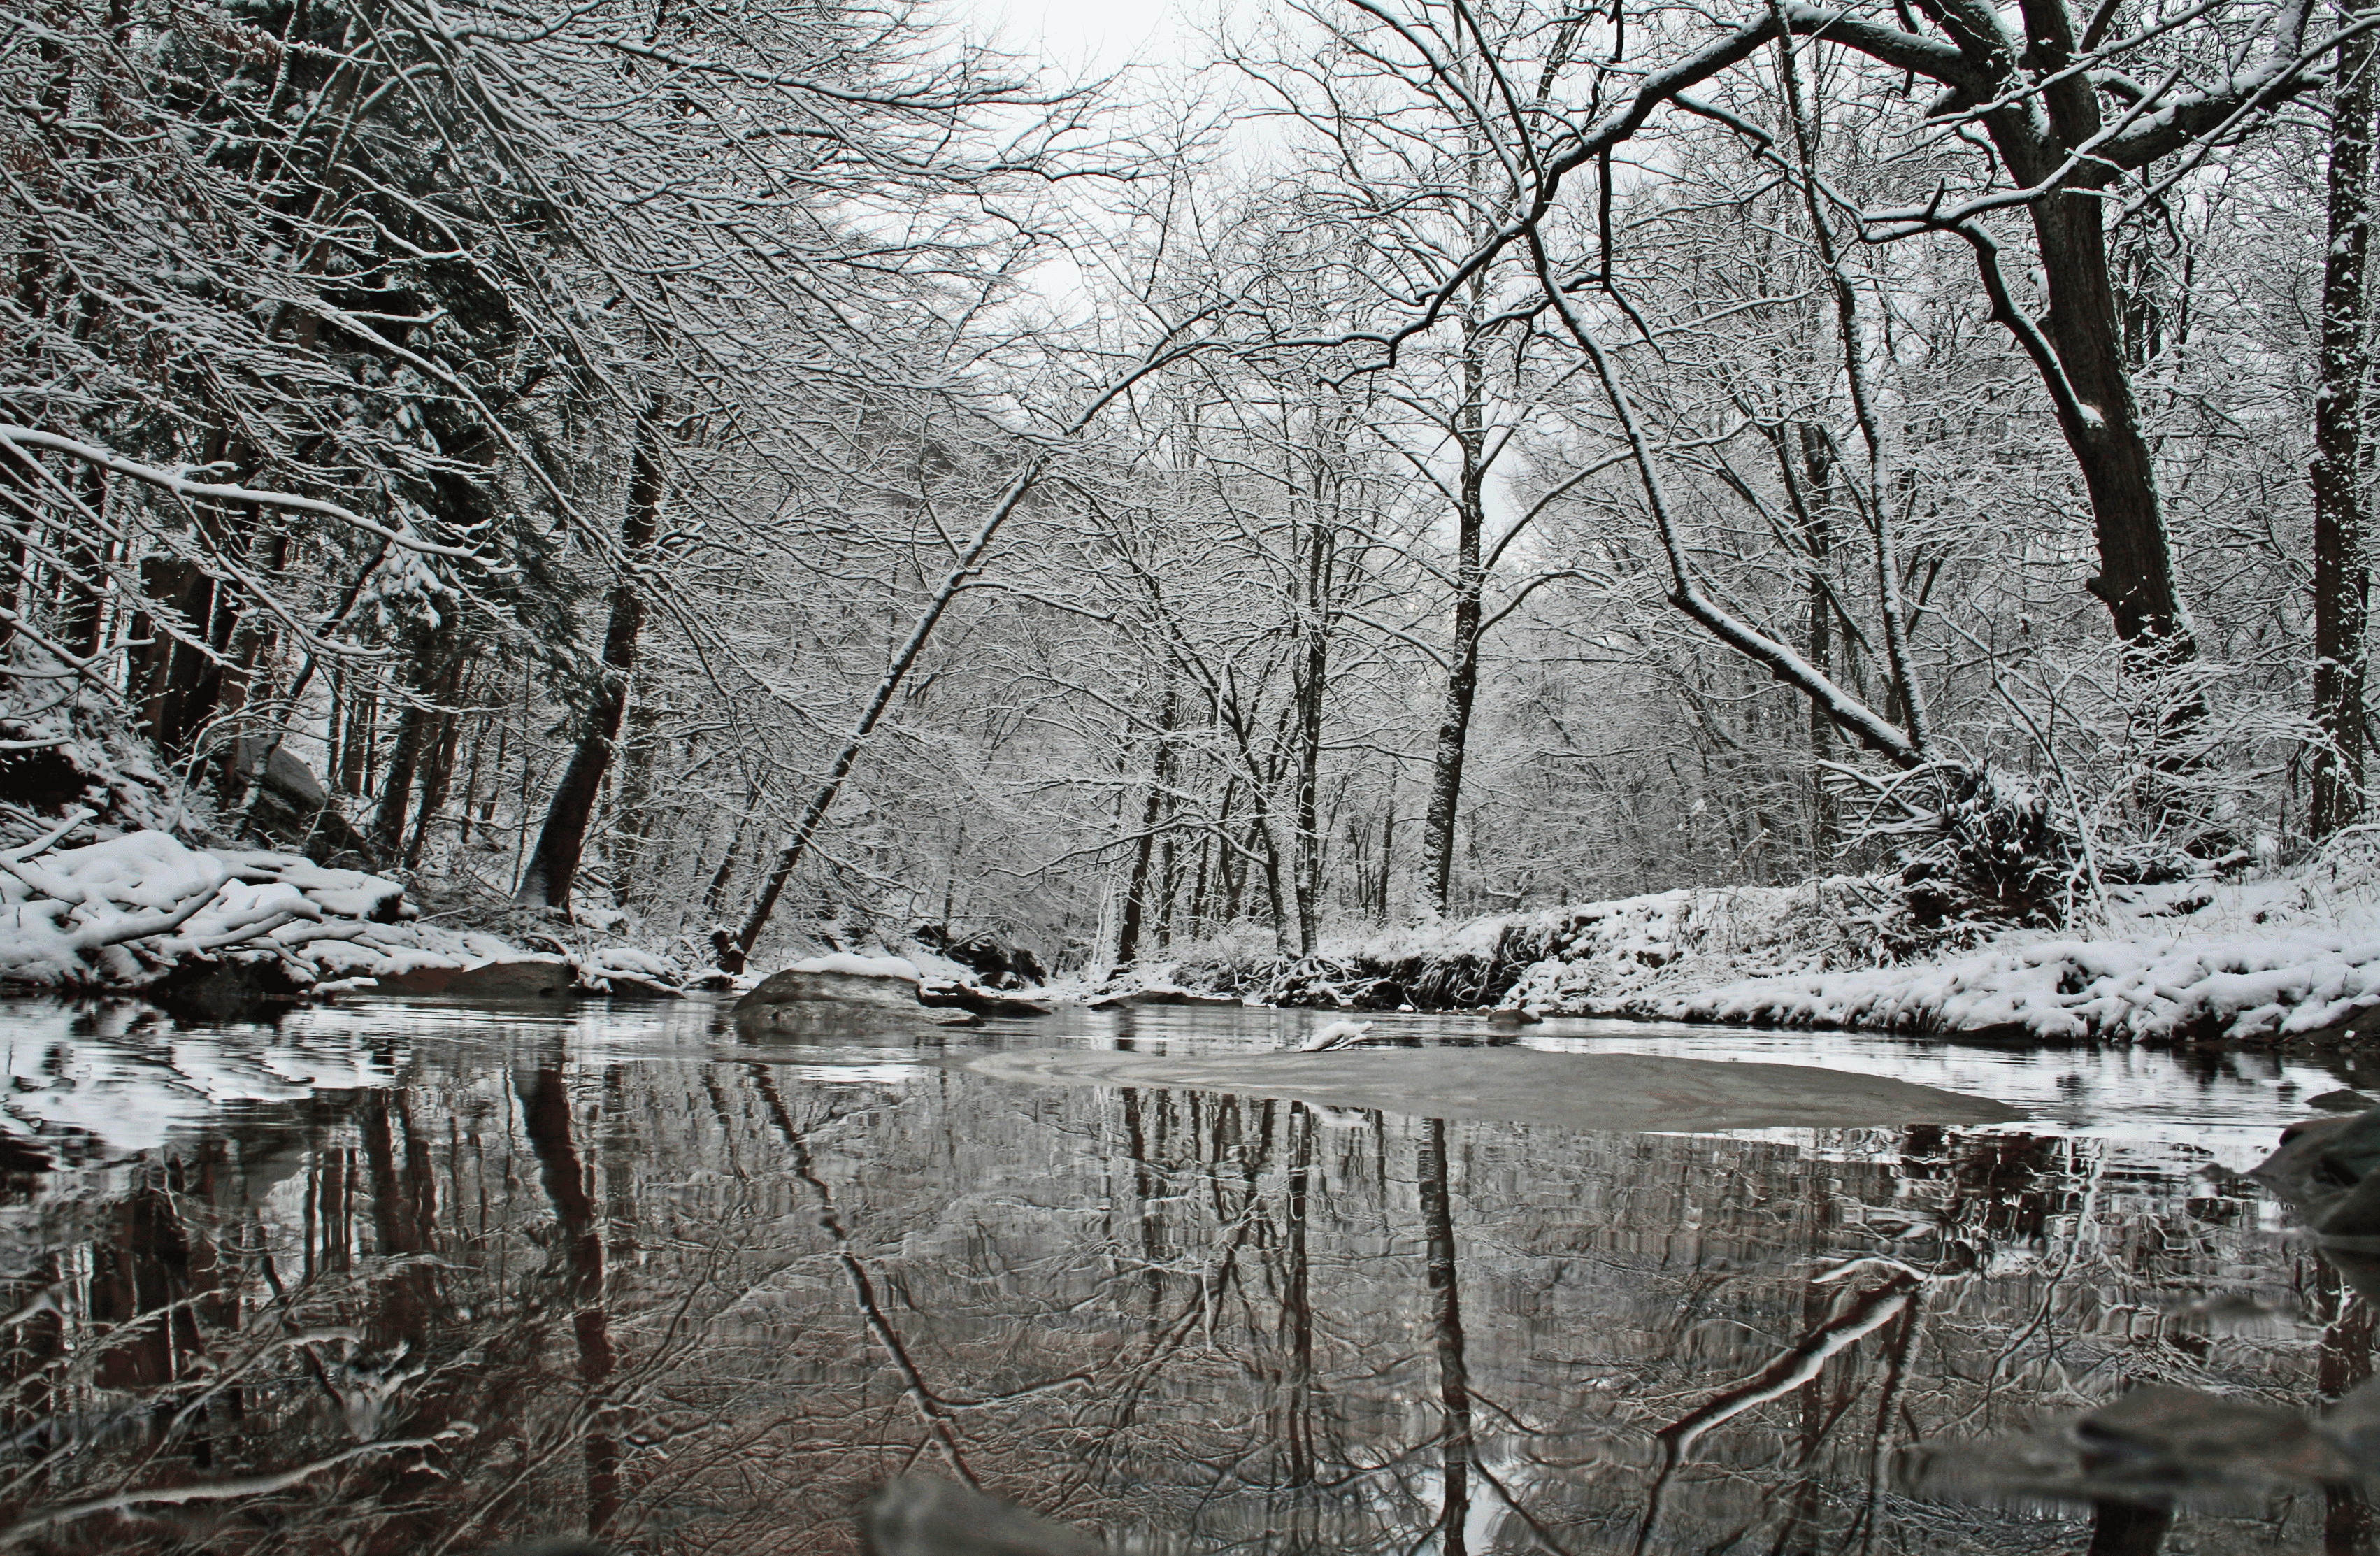 Winter Creek Reflection Snow Covered Trees | Creeks & Streams| Free ...